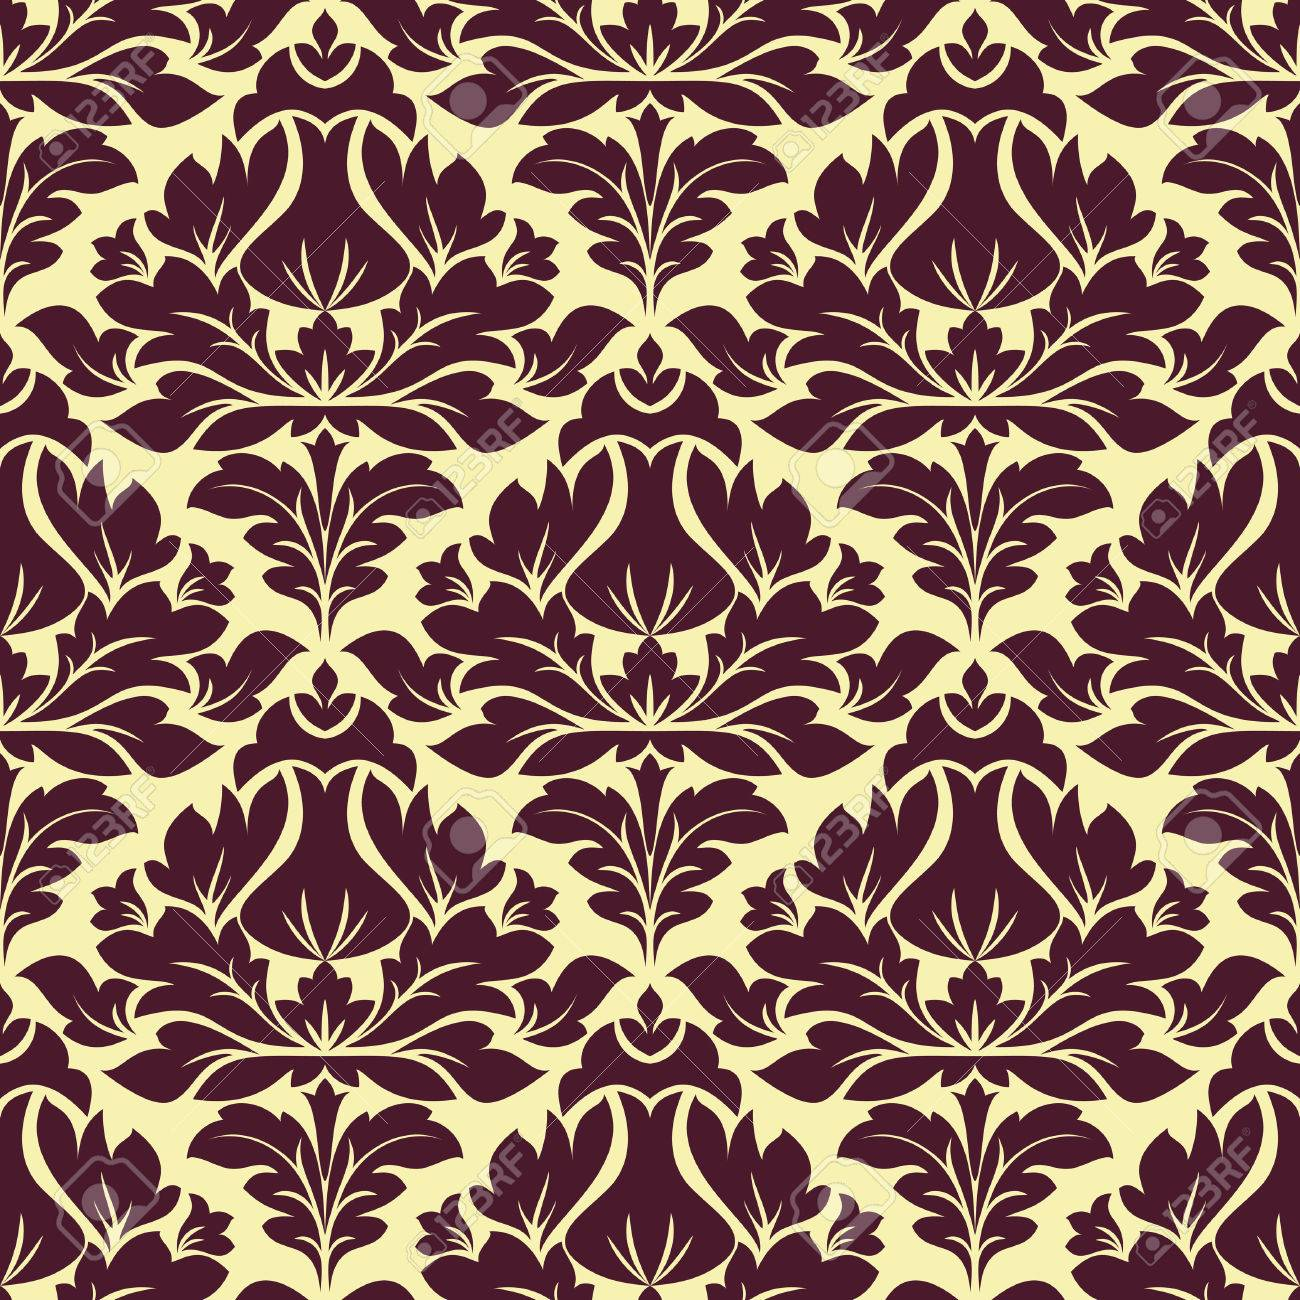 1300x1300 Purple Colored Floral Arabesque Seamless Pattern In Damask Style